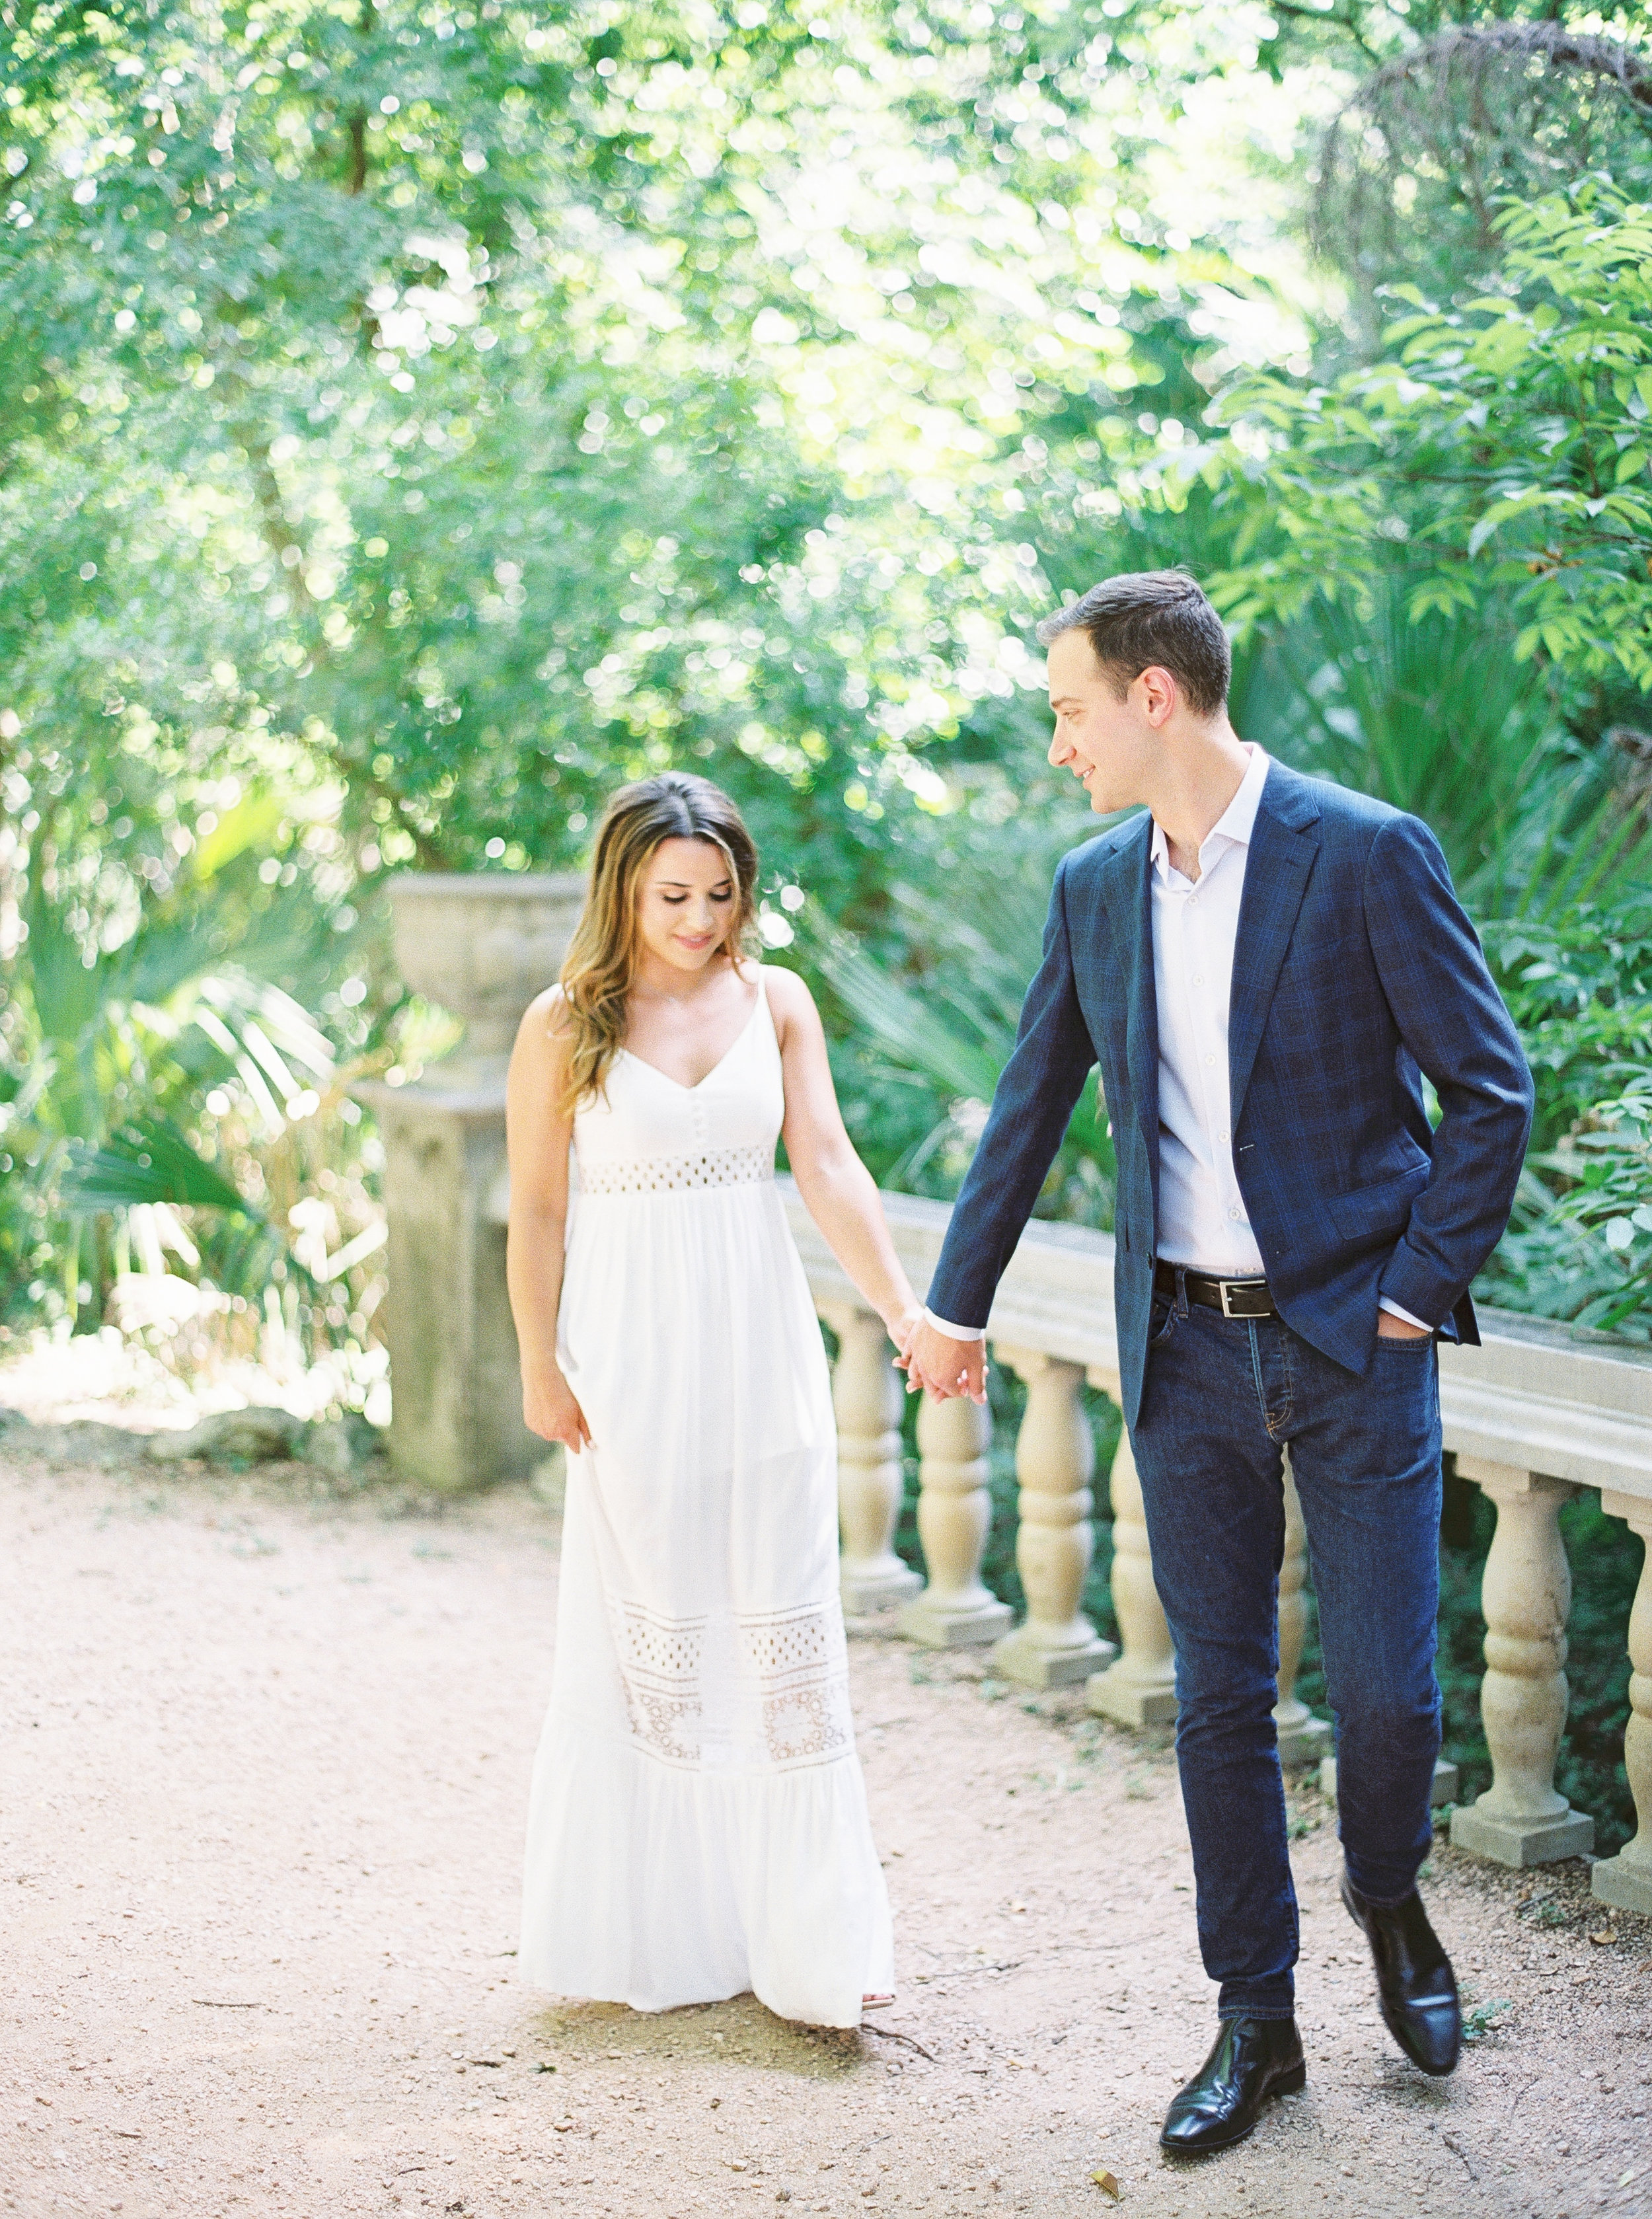 Rachel Owens Photography - Austin Wedding Photographer - Laguna Gloria Engagement - 6.jpg